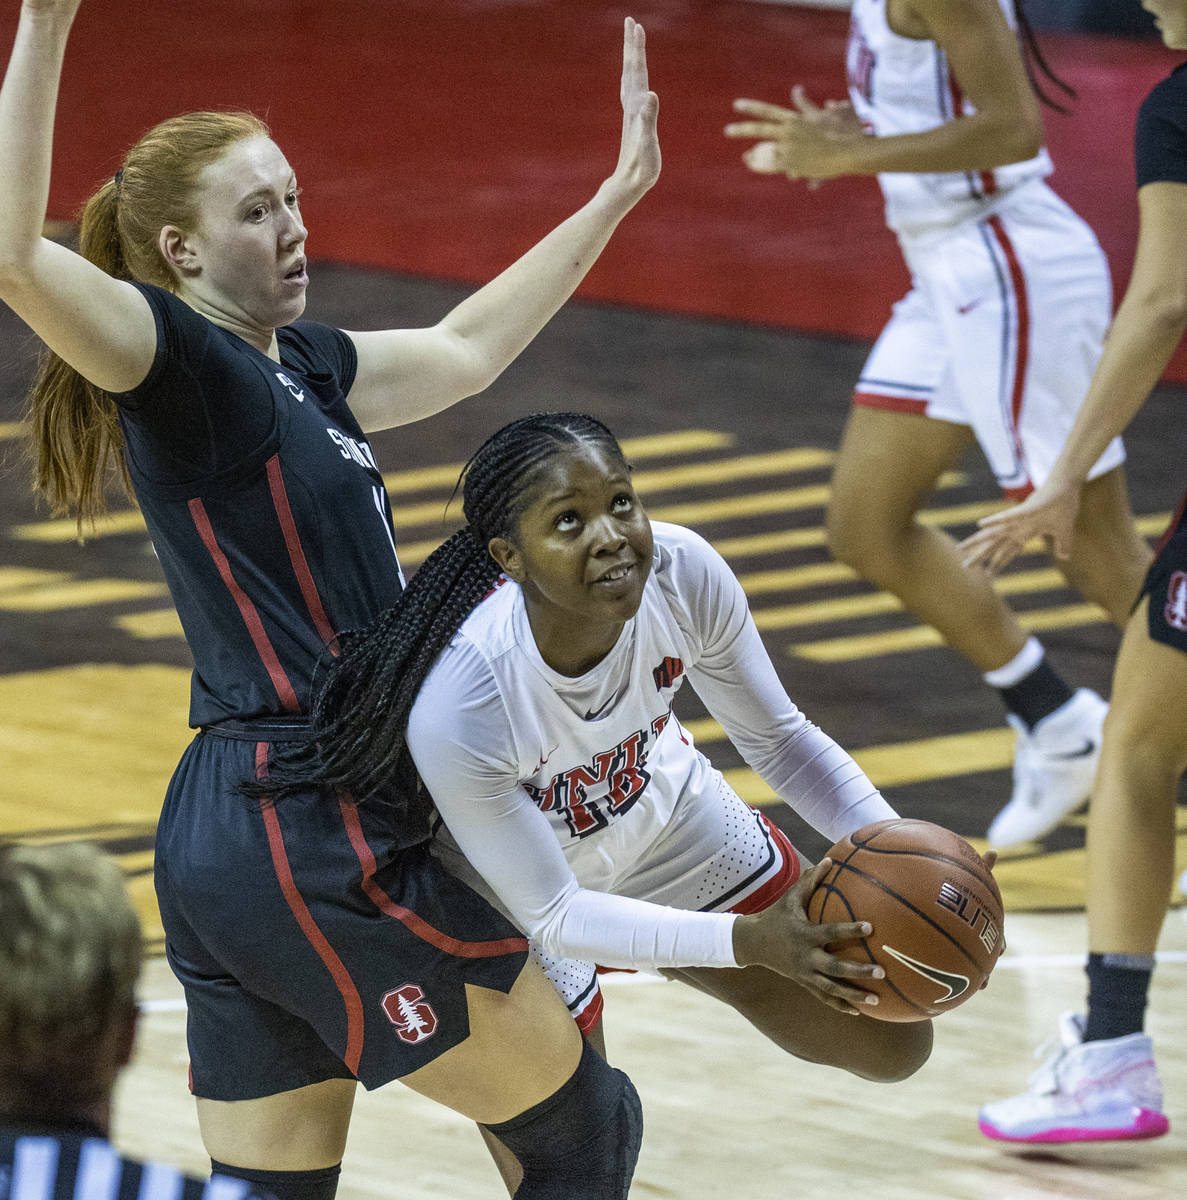 UNLV Lady Rebels forward Anna Blount (12, right) looks to the basket after getting past Stanfor ...